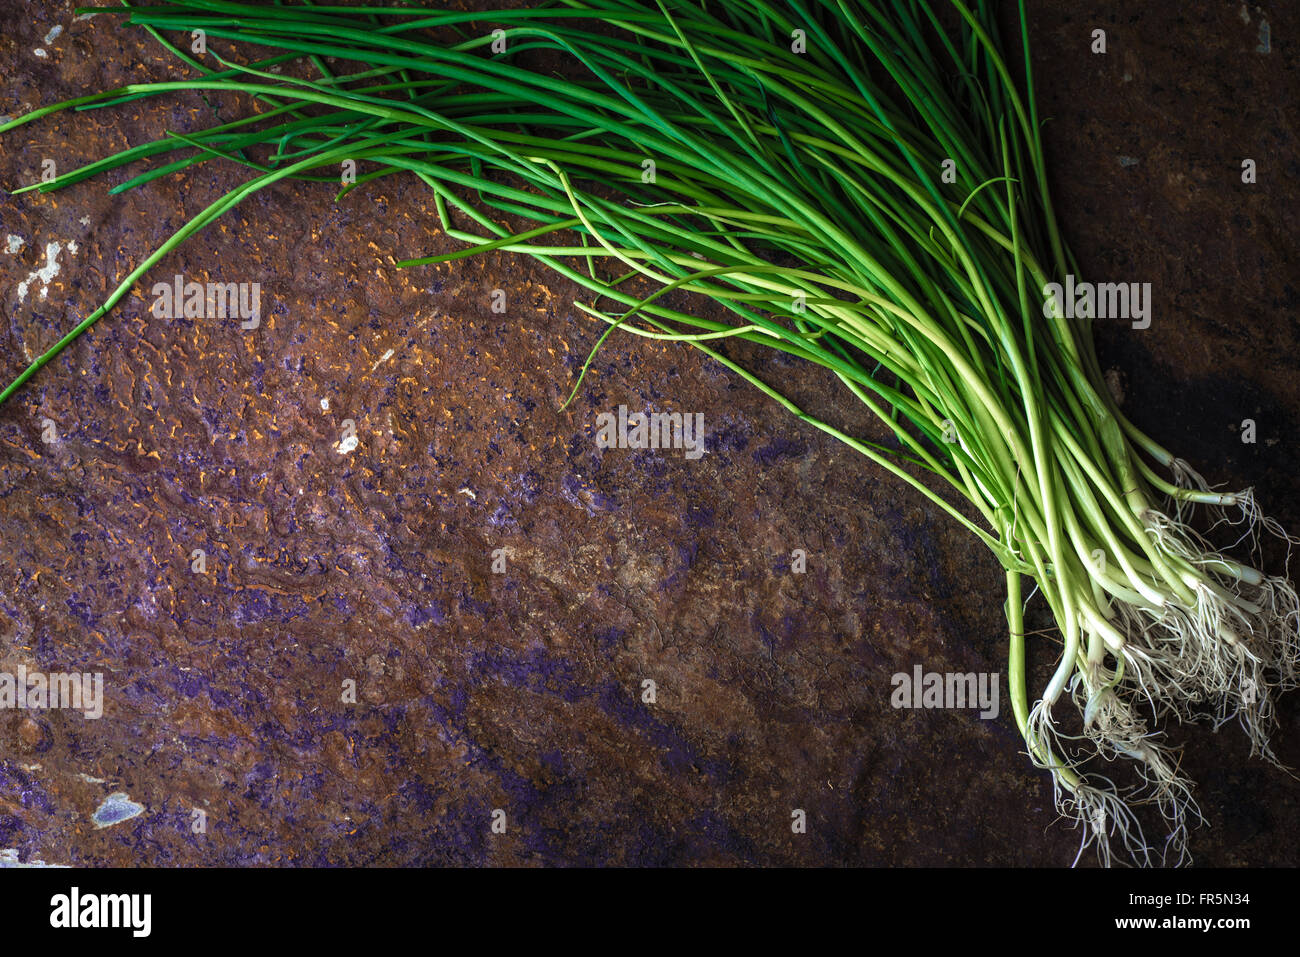 Green onion stalks and roots on the stone table horizontal - Stock Image